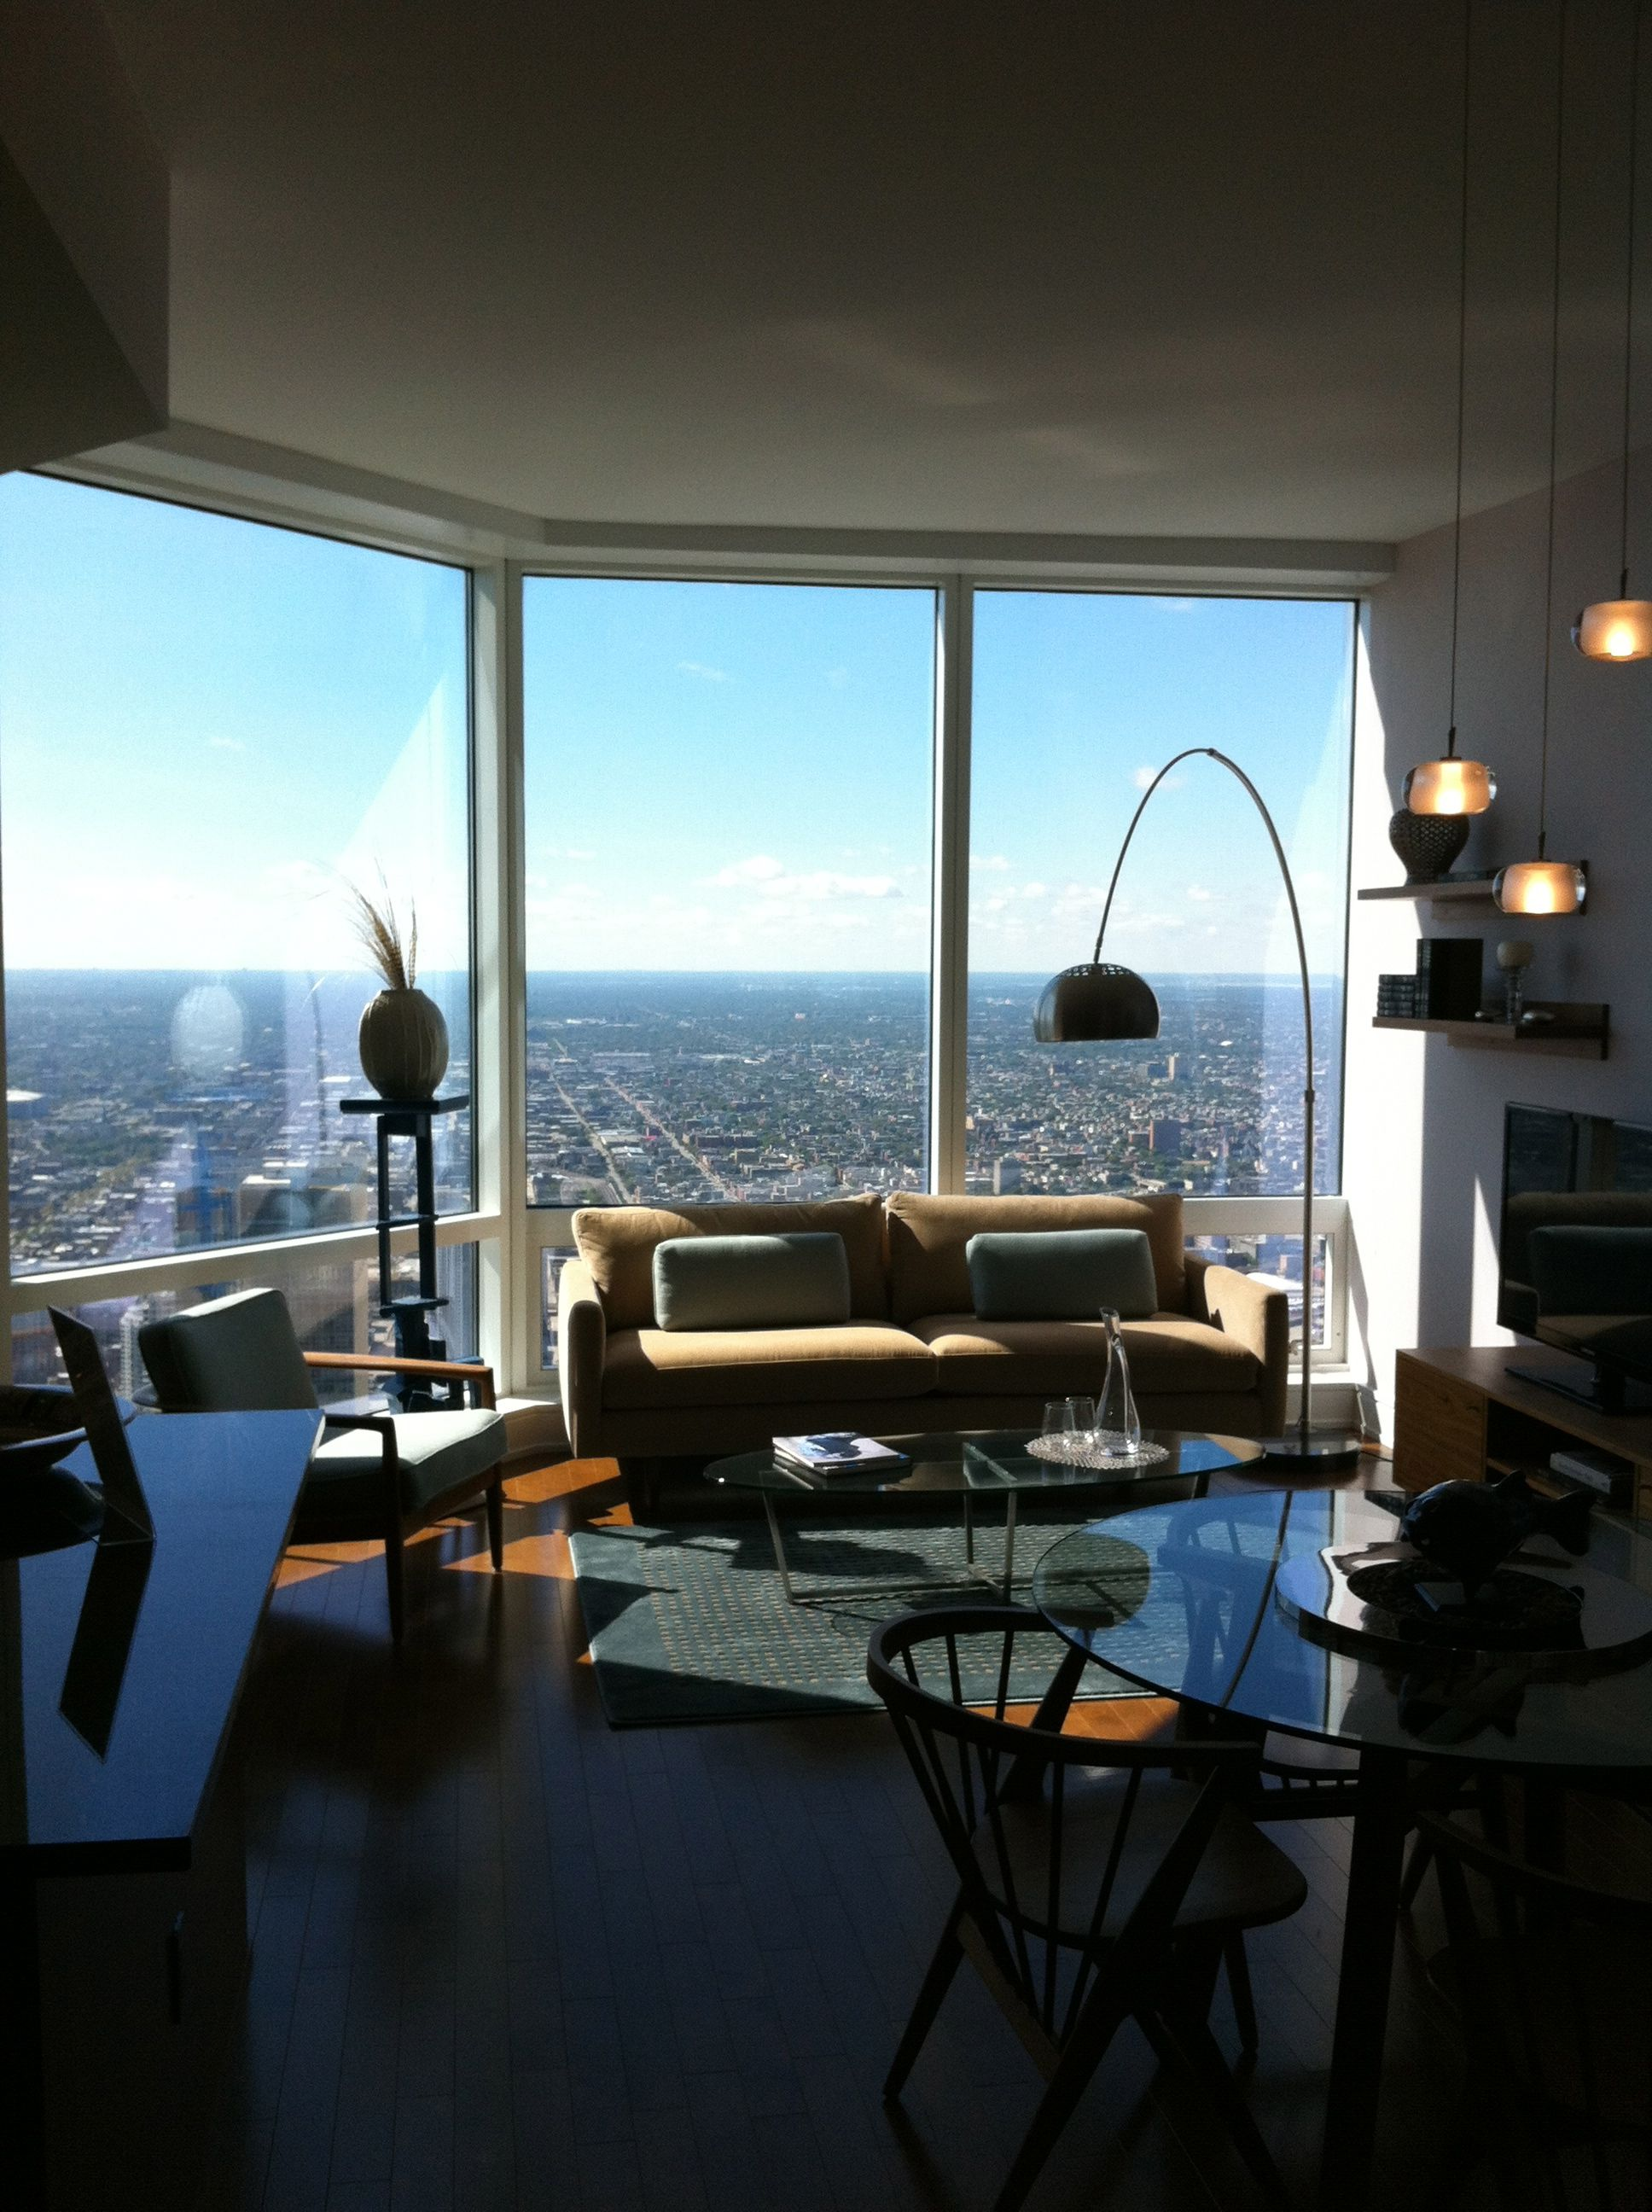 Telecommunication Room Design: From The Trump Building 78th Floor.